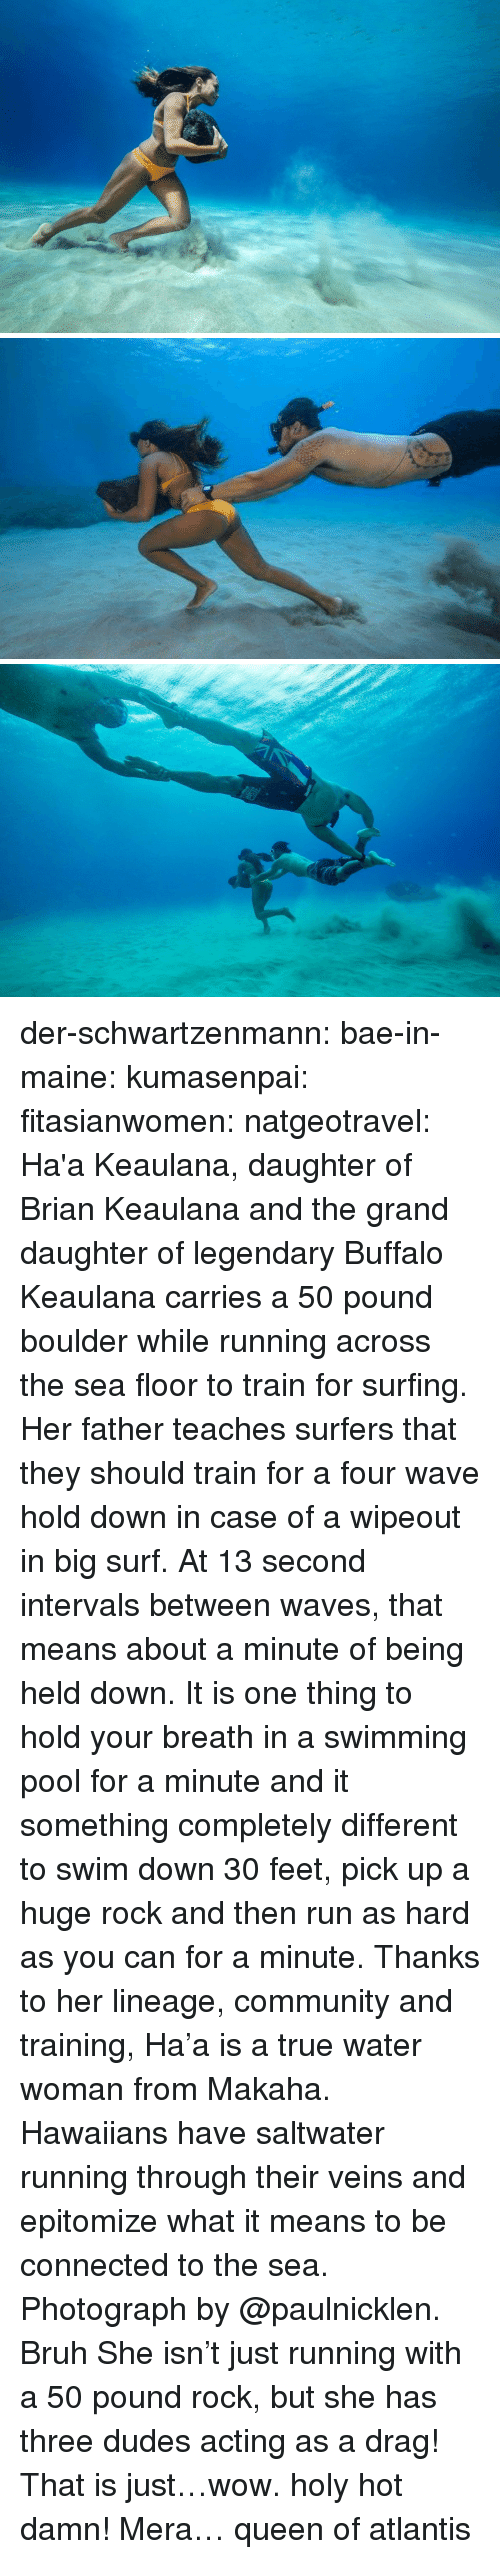 surfing: der-schwartzenmann:  bae-in-maine:  kumasenpai:  fitasianwomen:  natgeotravel: Ha'a Keaulana,  daughter of Brian Keaulana and the grand daughter of legendary Buffalo  Keaulana carries a 50 pound boulder while running across the sea floor  to train for surfing. Her father teaches surfers that they should train  for a four wave hold down in case of a wipeout in big surf. At 13 second  intervals between waves, that means about a minute of being held down.  It is one thing to hold your breath in a swimming pool for a minute and  it something completely different to swim down 30 feet, pick up a huge  rock and then run as hard as you can for a minute. Thanks to her  lineage, community and training, Ha'a is a true water woman from Makaha.  Hawaiians have saltwater running through their veins and epitomize what  it means to be connected to the sea.   Photograph by @paulnicklen. Bruh   She isn't just running with a 50 pound rock, but she has three dudes acting as a drag! That is just…wow. holy hot damn!   Mera… queen of atlantis